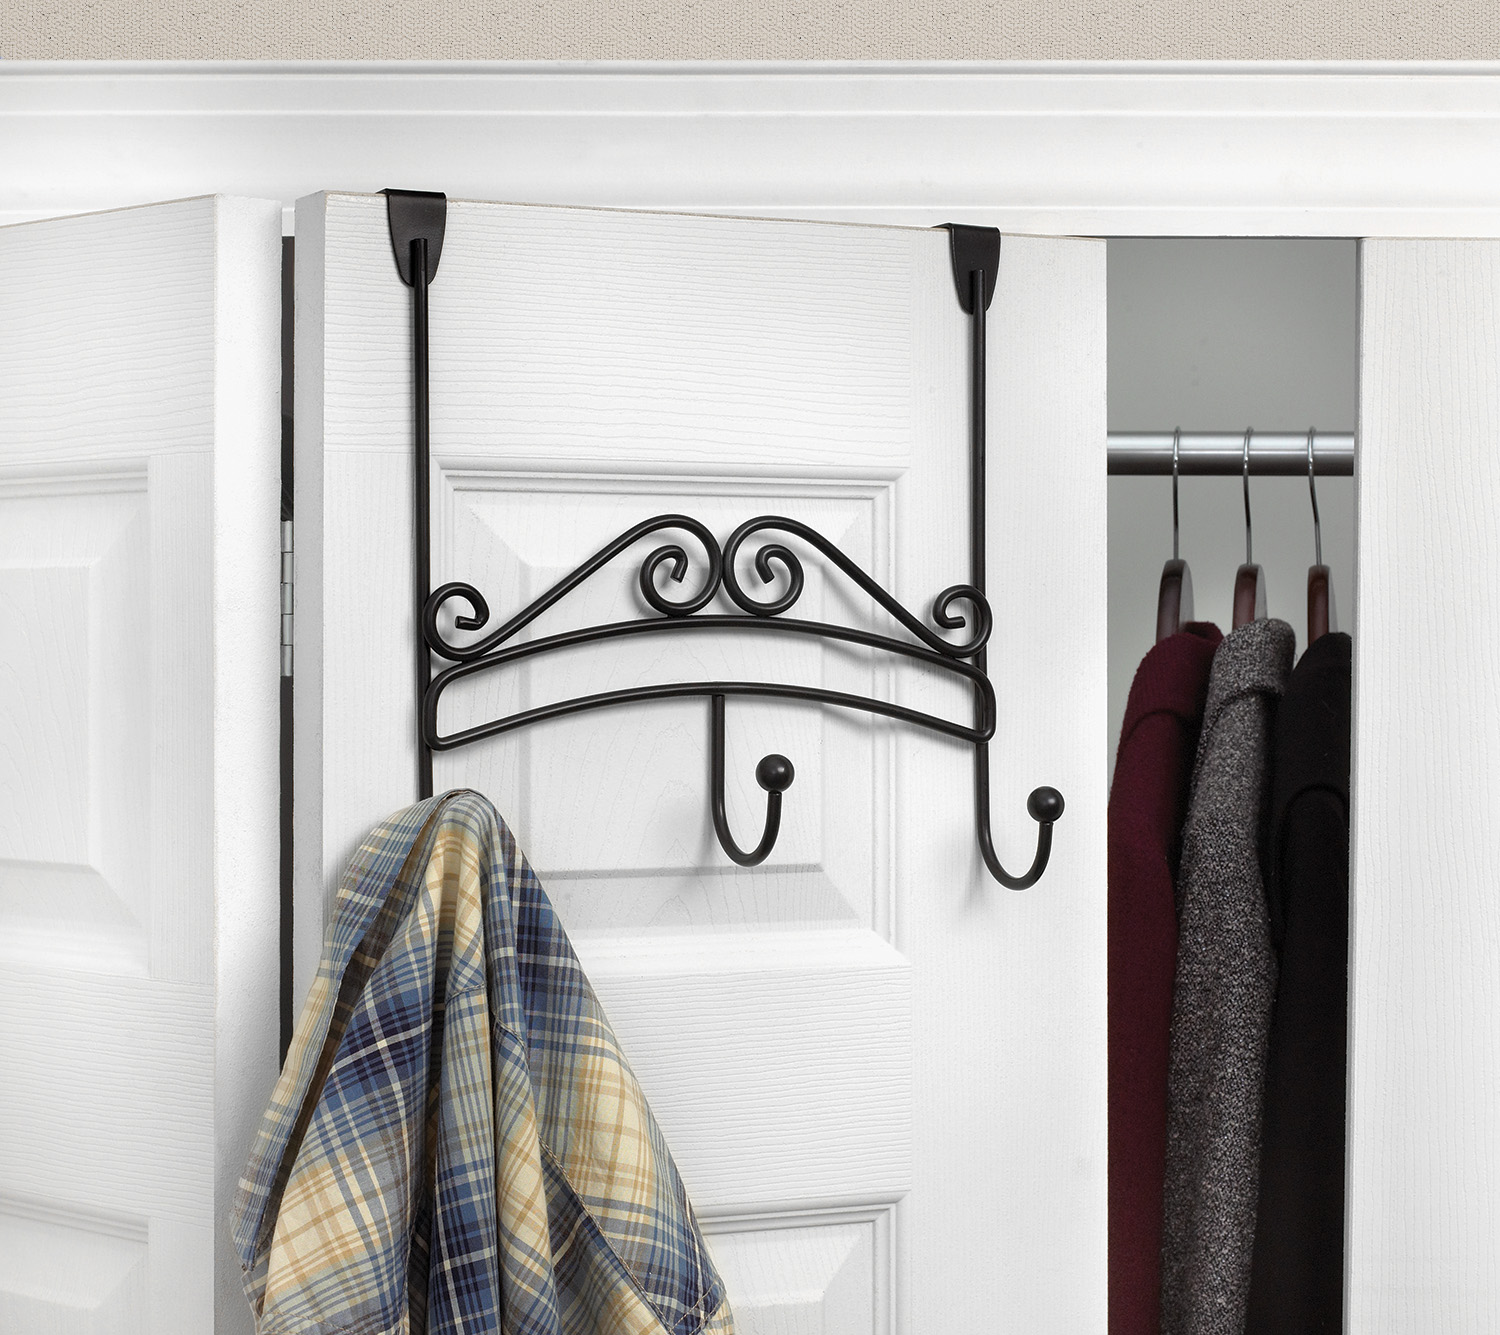 over the door hooks for closet organization